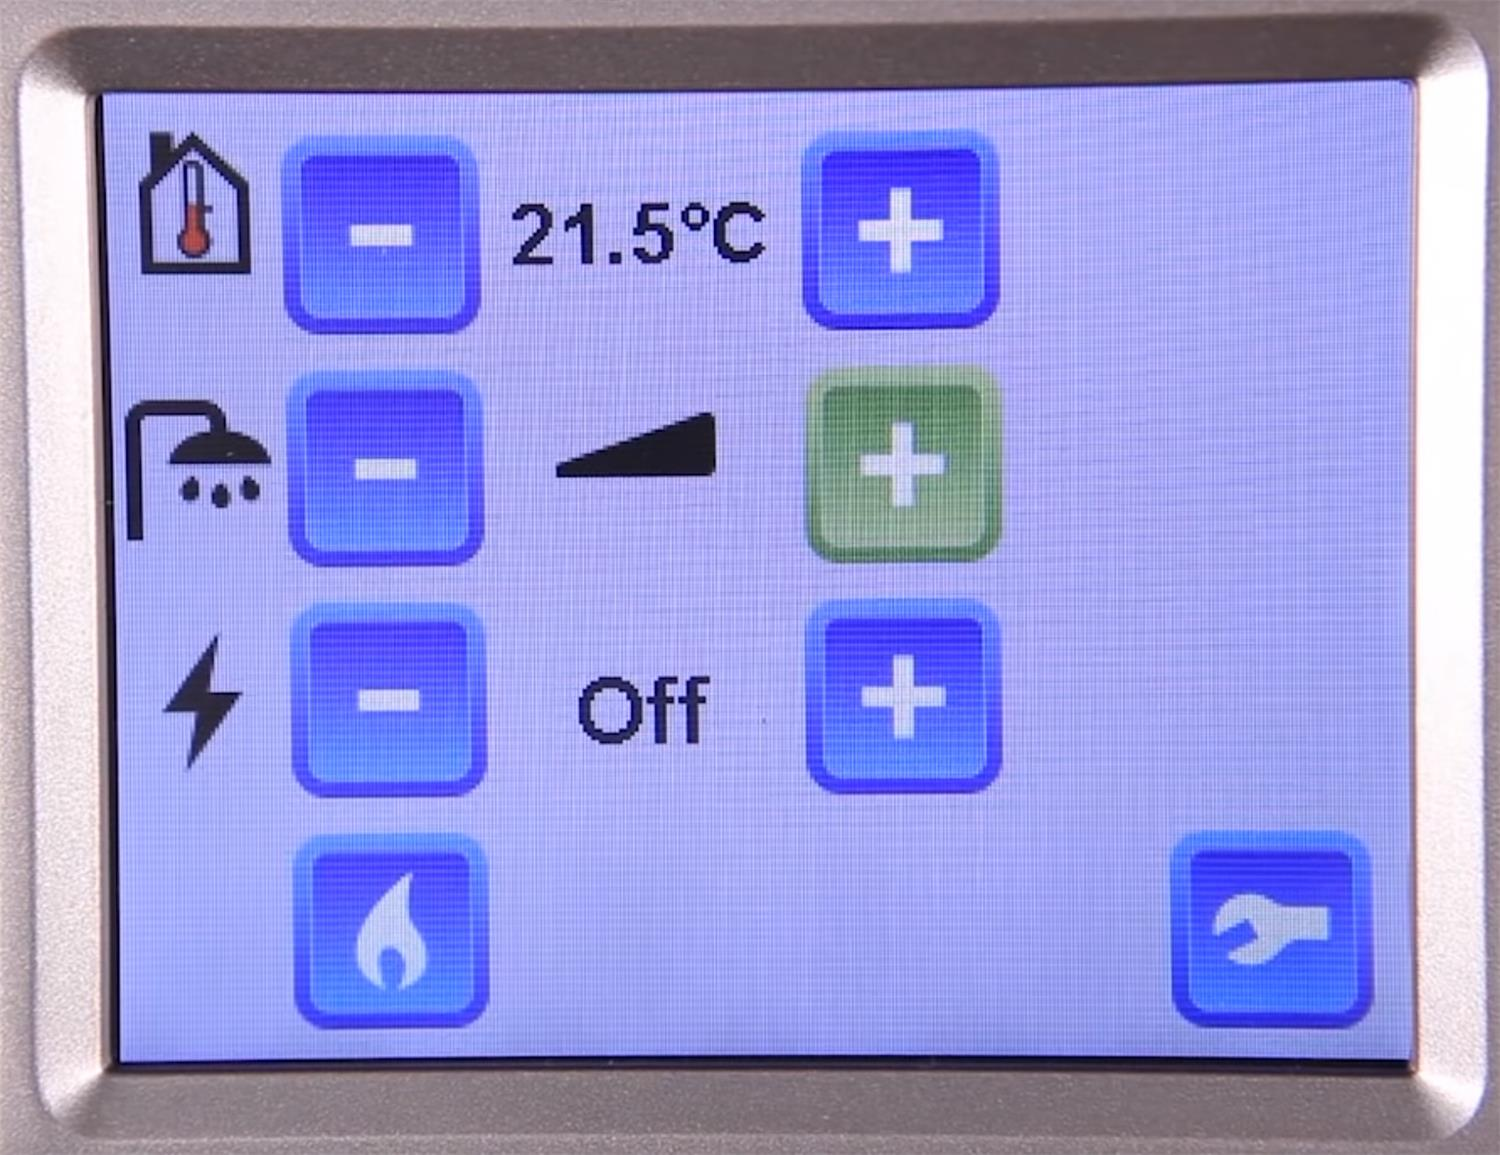 On max, the Alde 3020 control panel will get your boiler to give you a hot water boost for 30 mins.